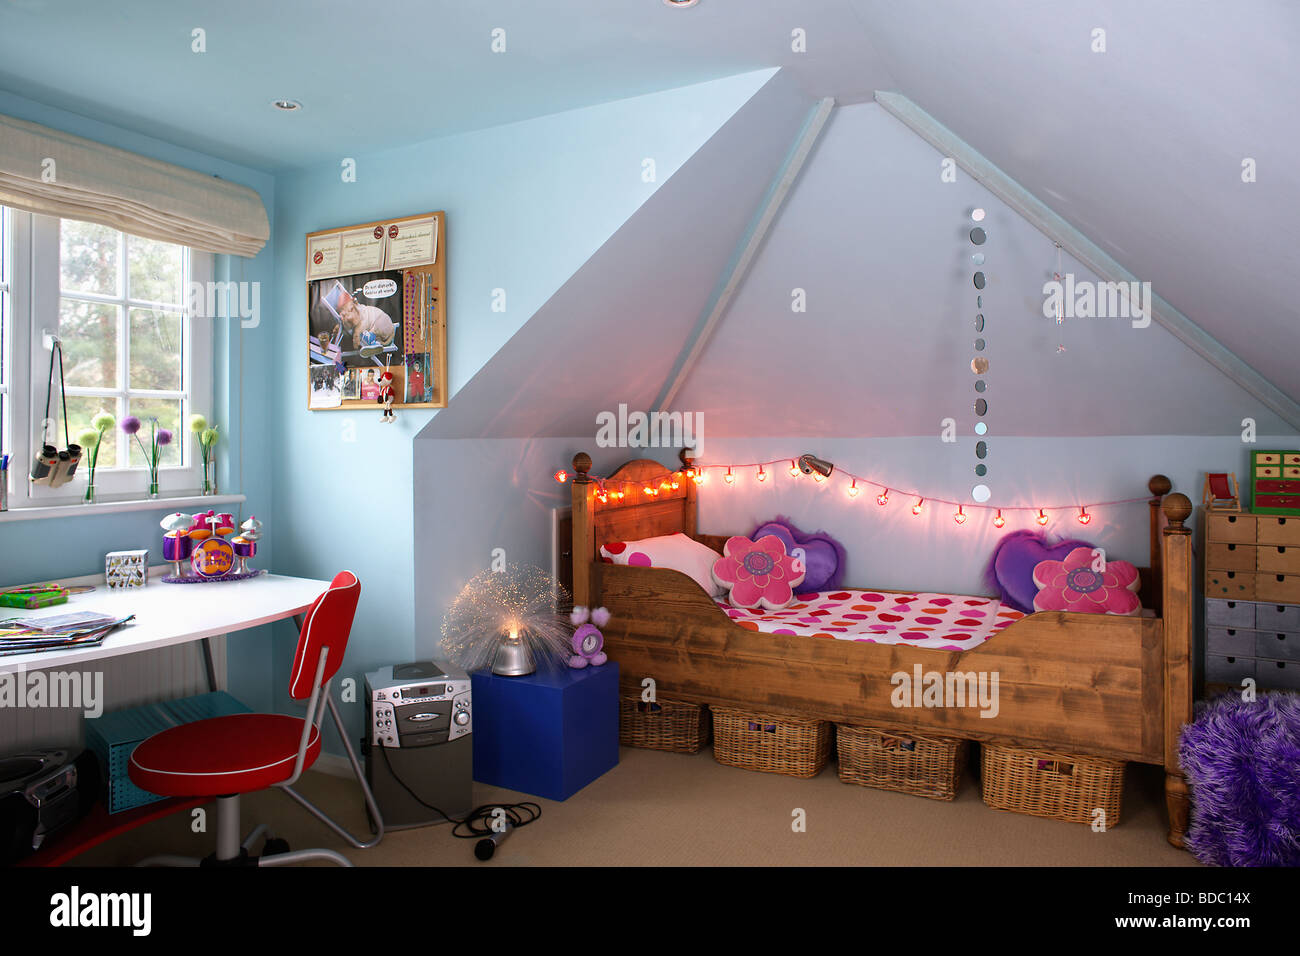 lights above bed master bedroom novelty fairy lights above wooden bed in teenagers pastel blue attic bedroom with underbed storage baskets